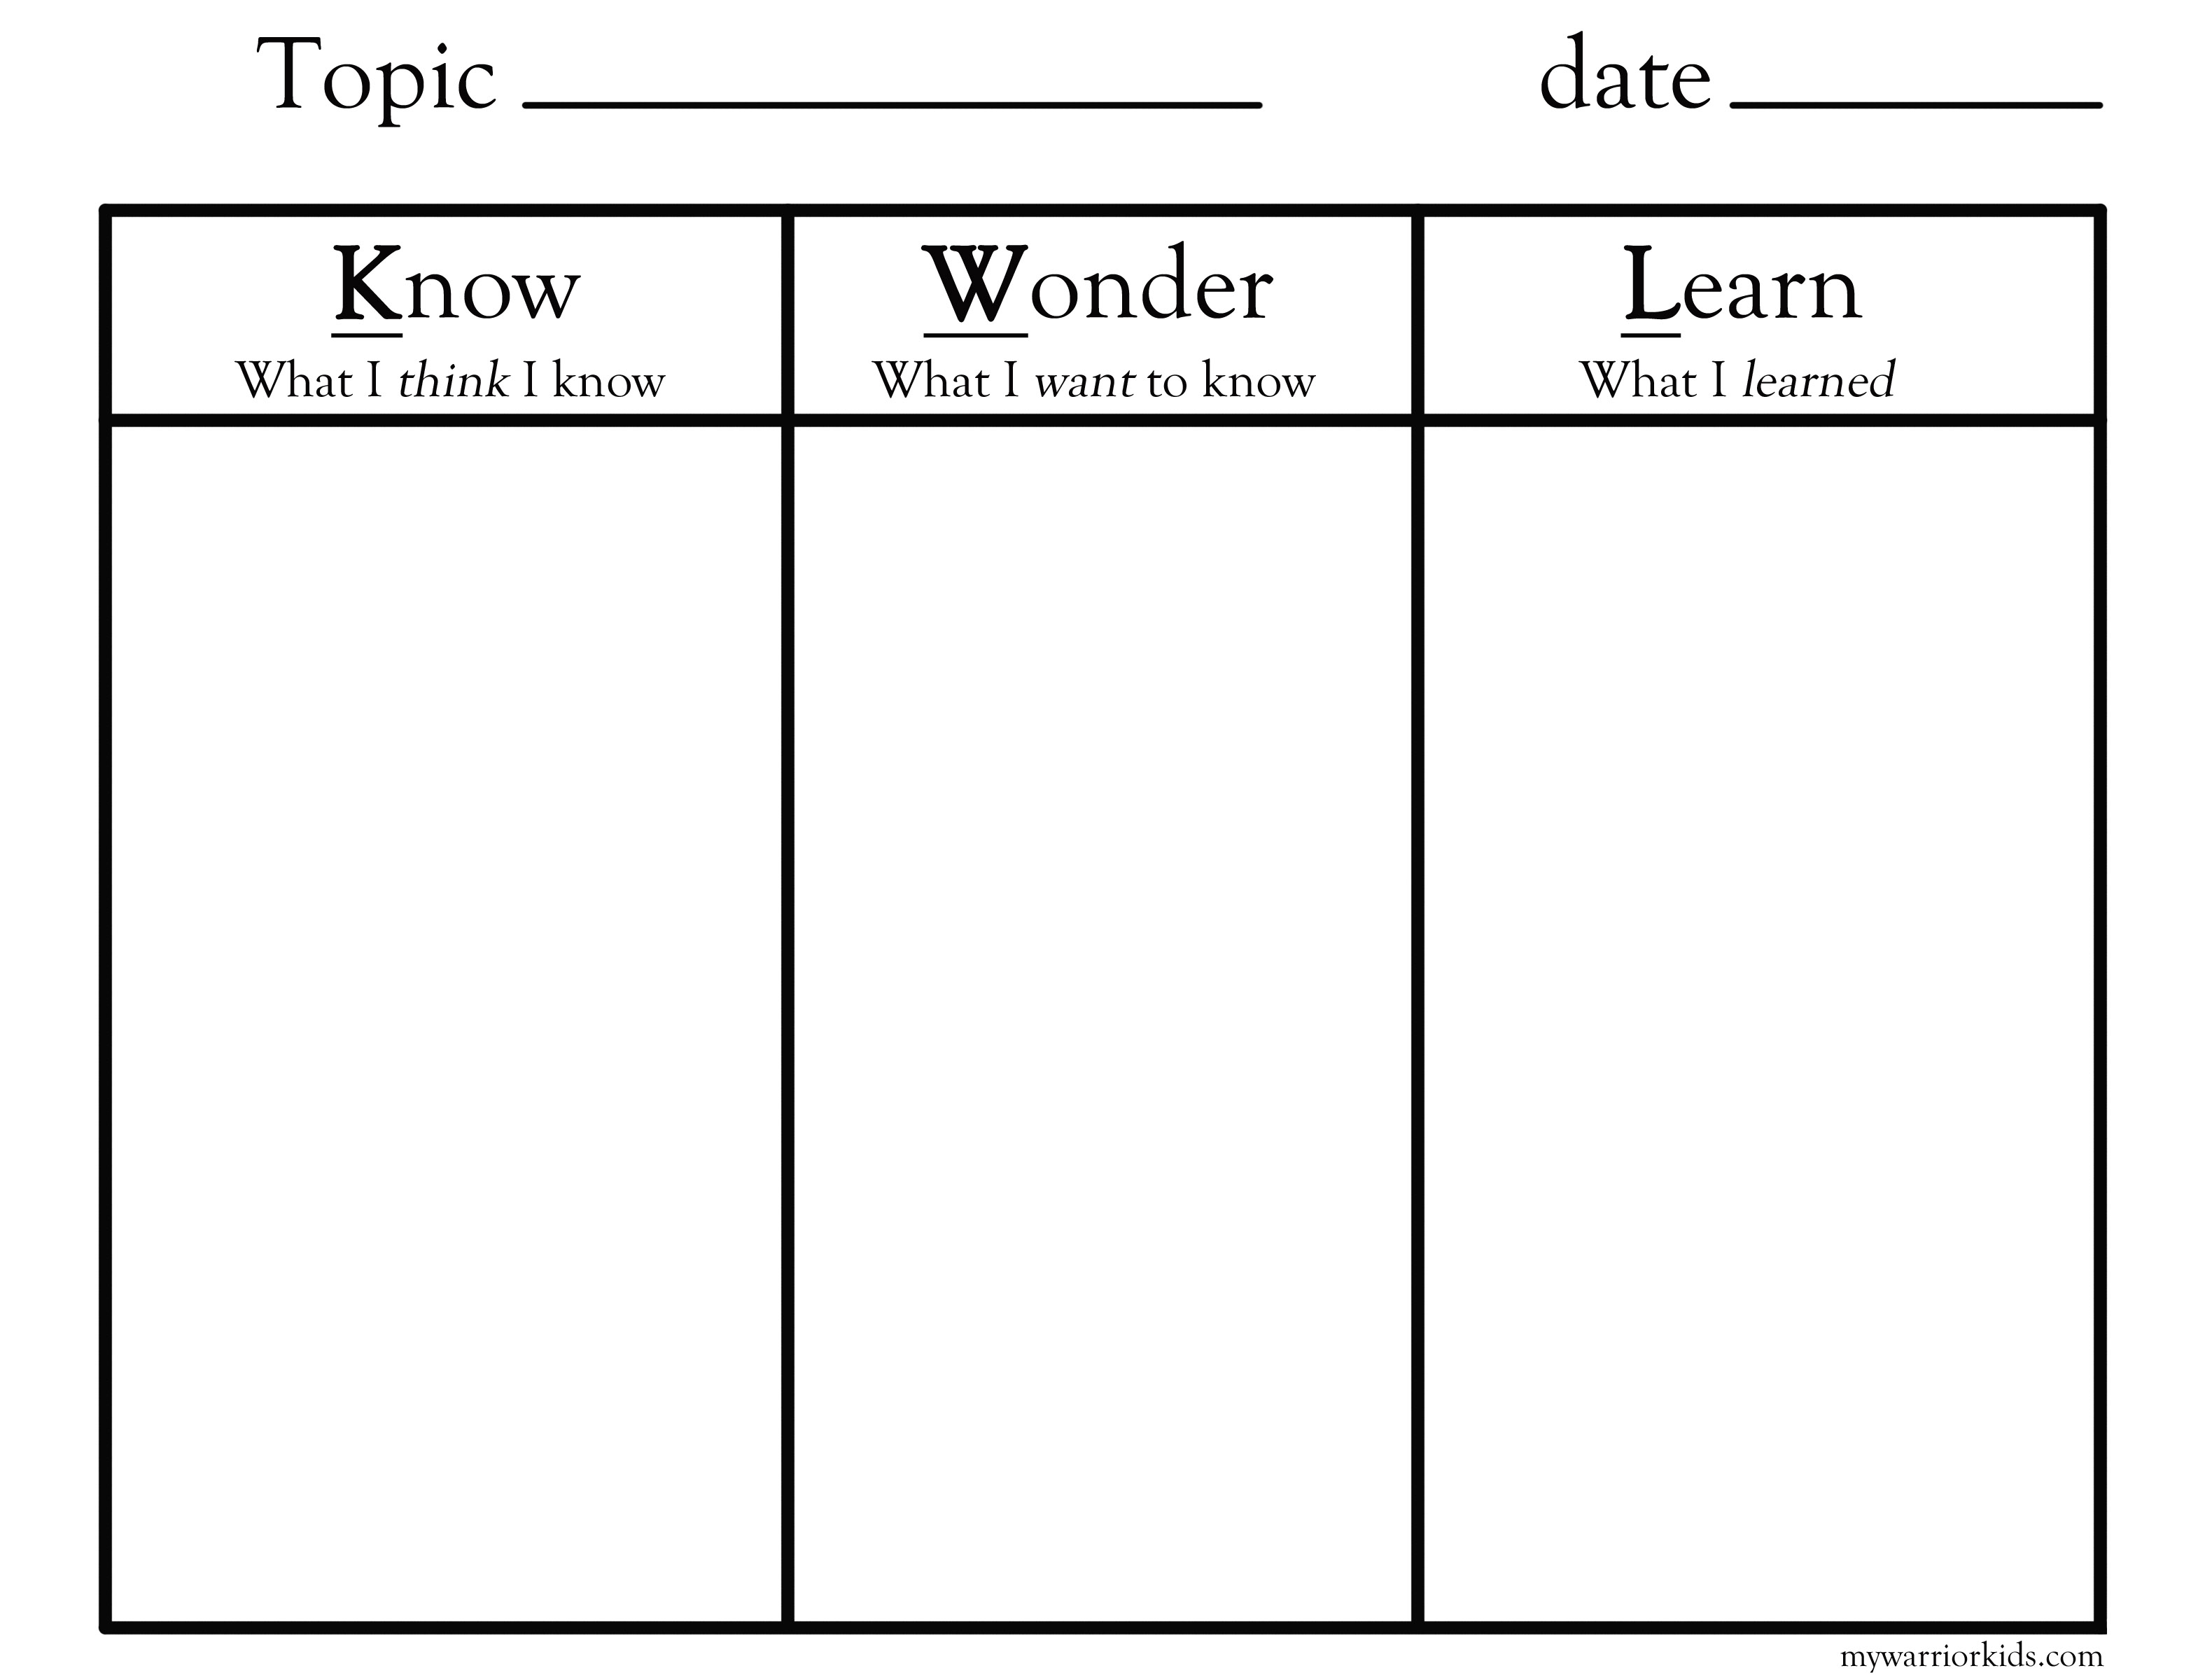 photo about Kwl Chart Printable known as Kwl Chart Template Pdf Ideen für Sie